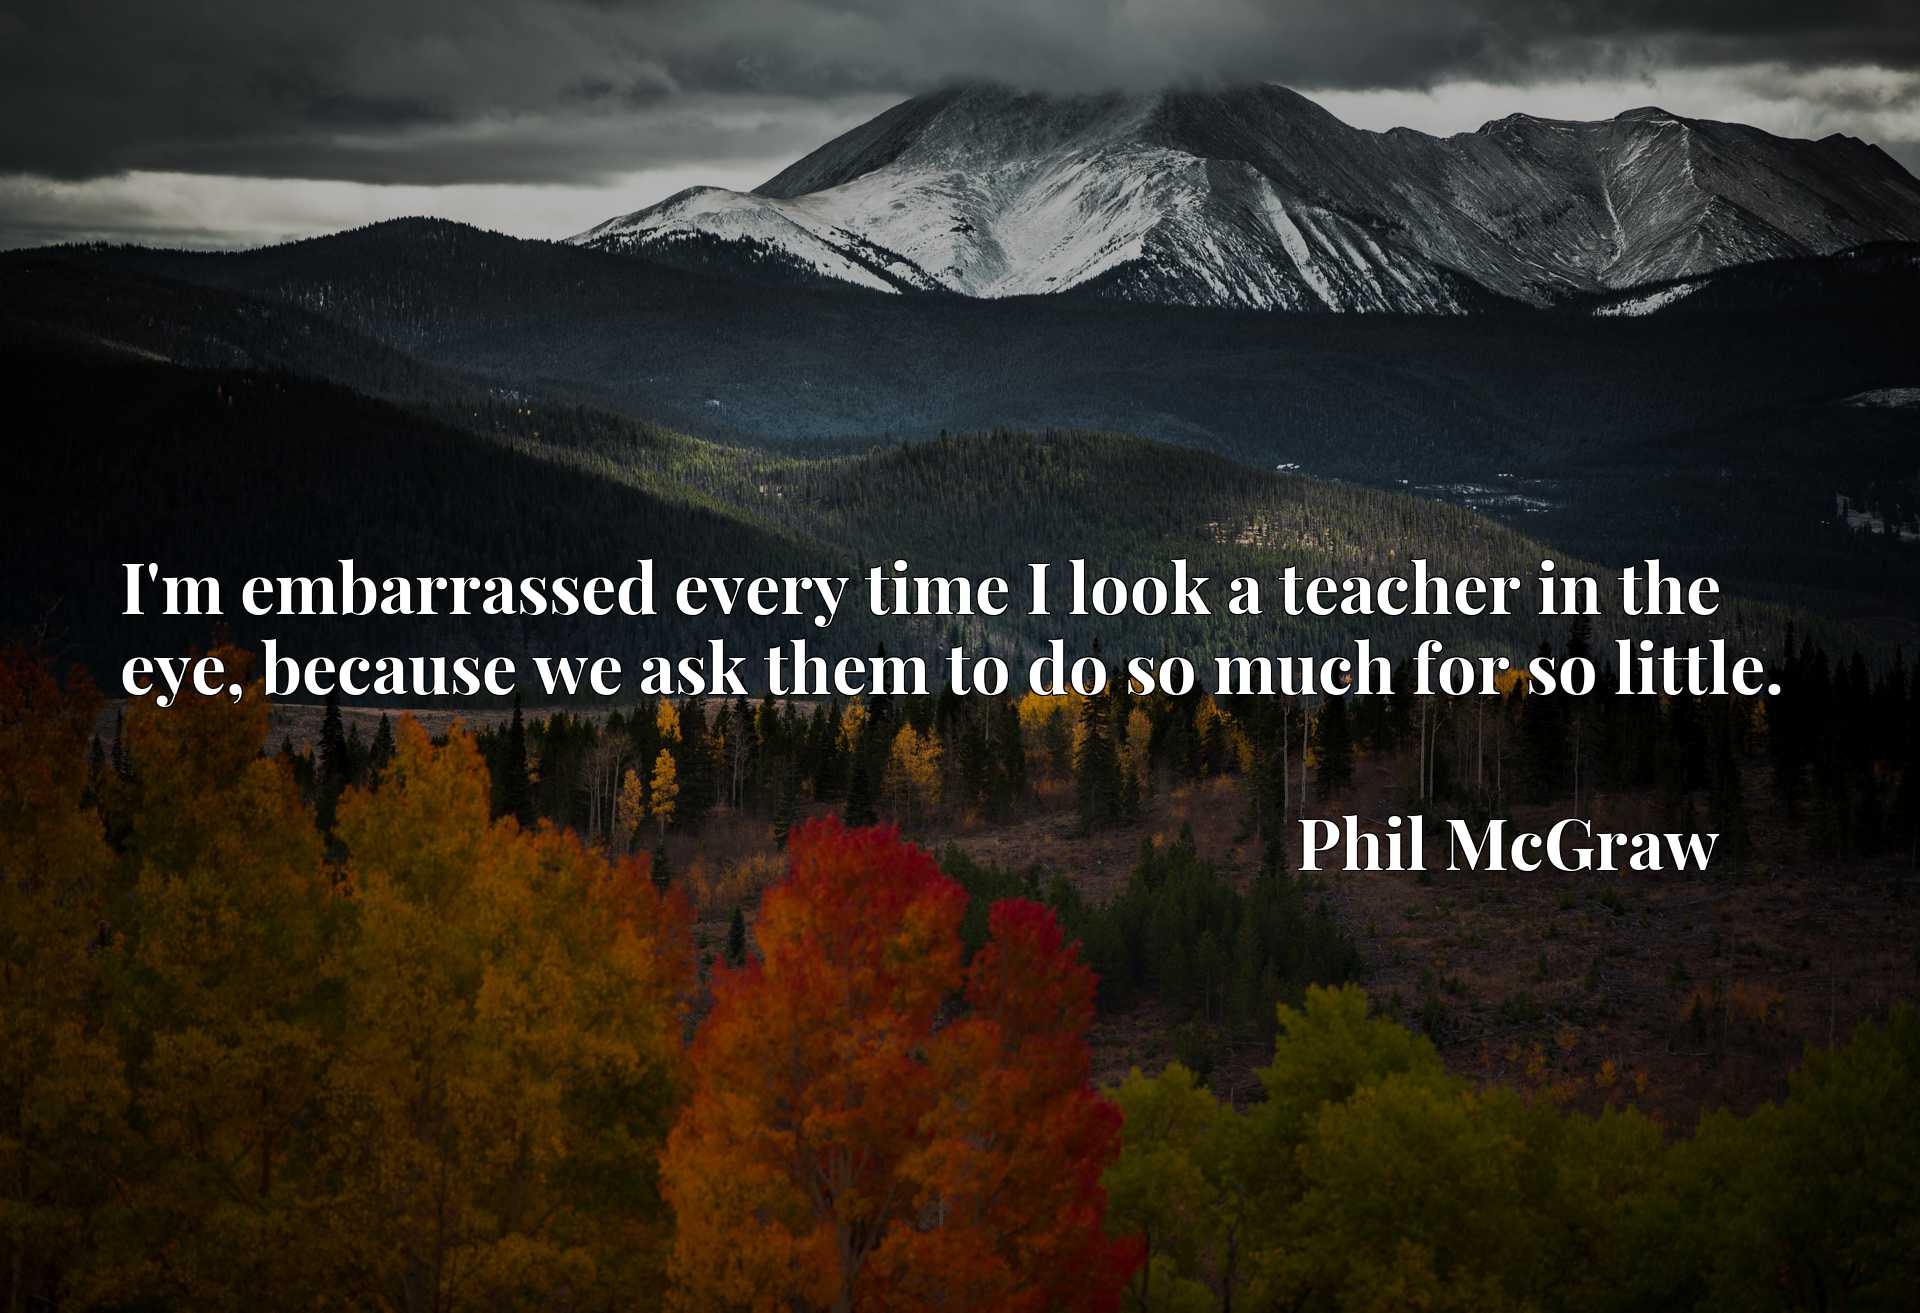 Quote Picture :I'm embarrassed every time I look a teacher in the eye, because we ask them to do so much for so little.